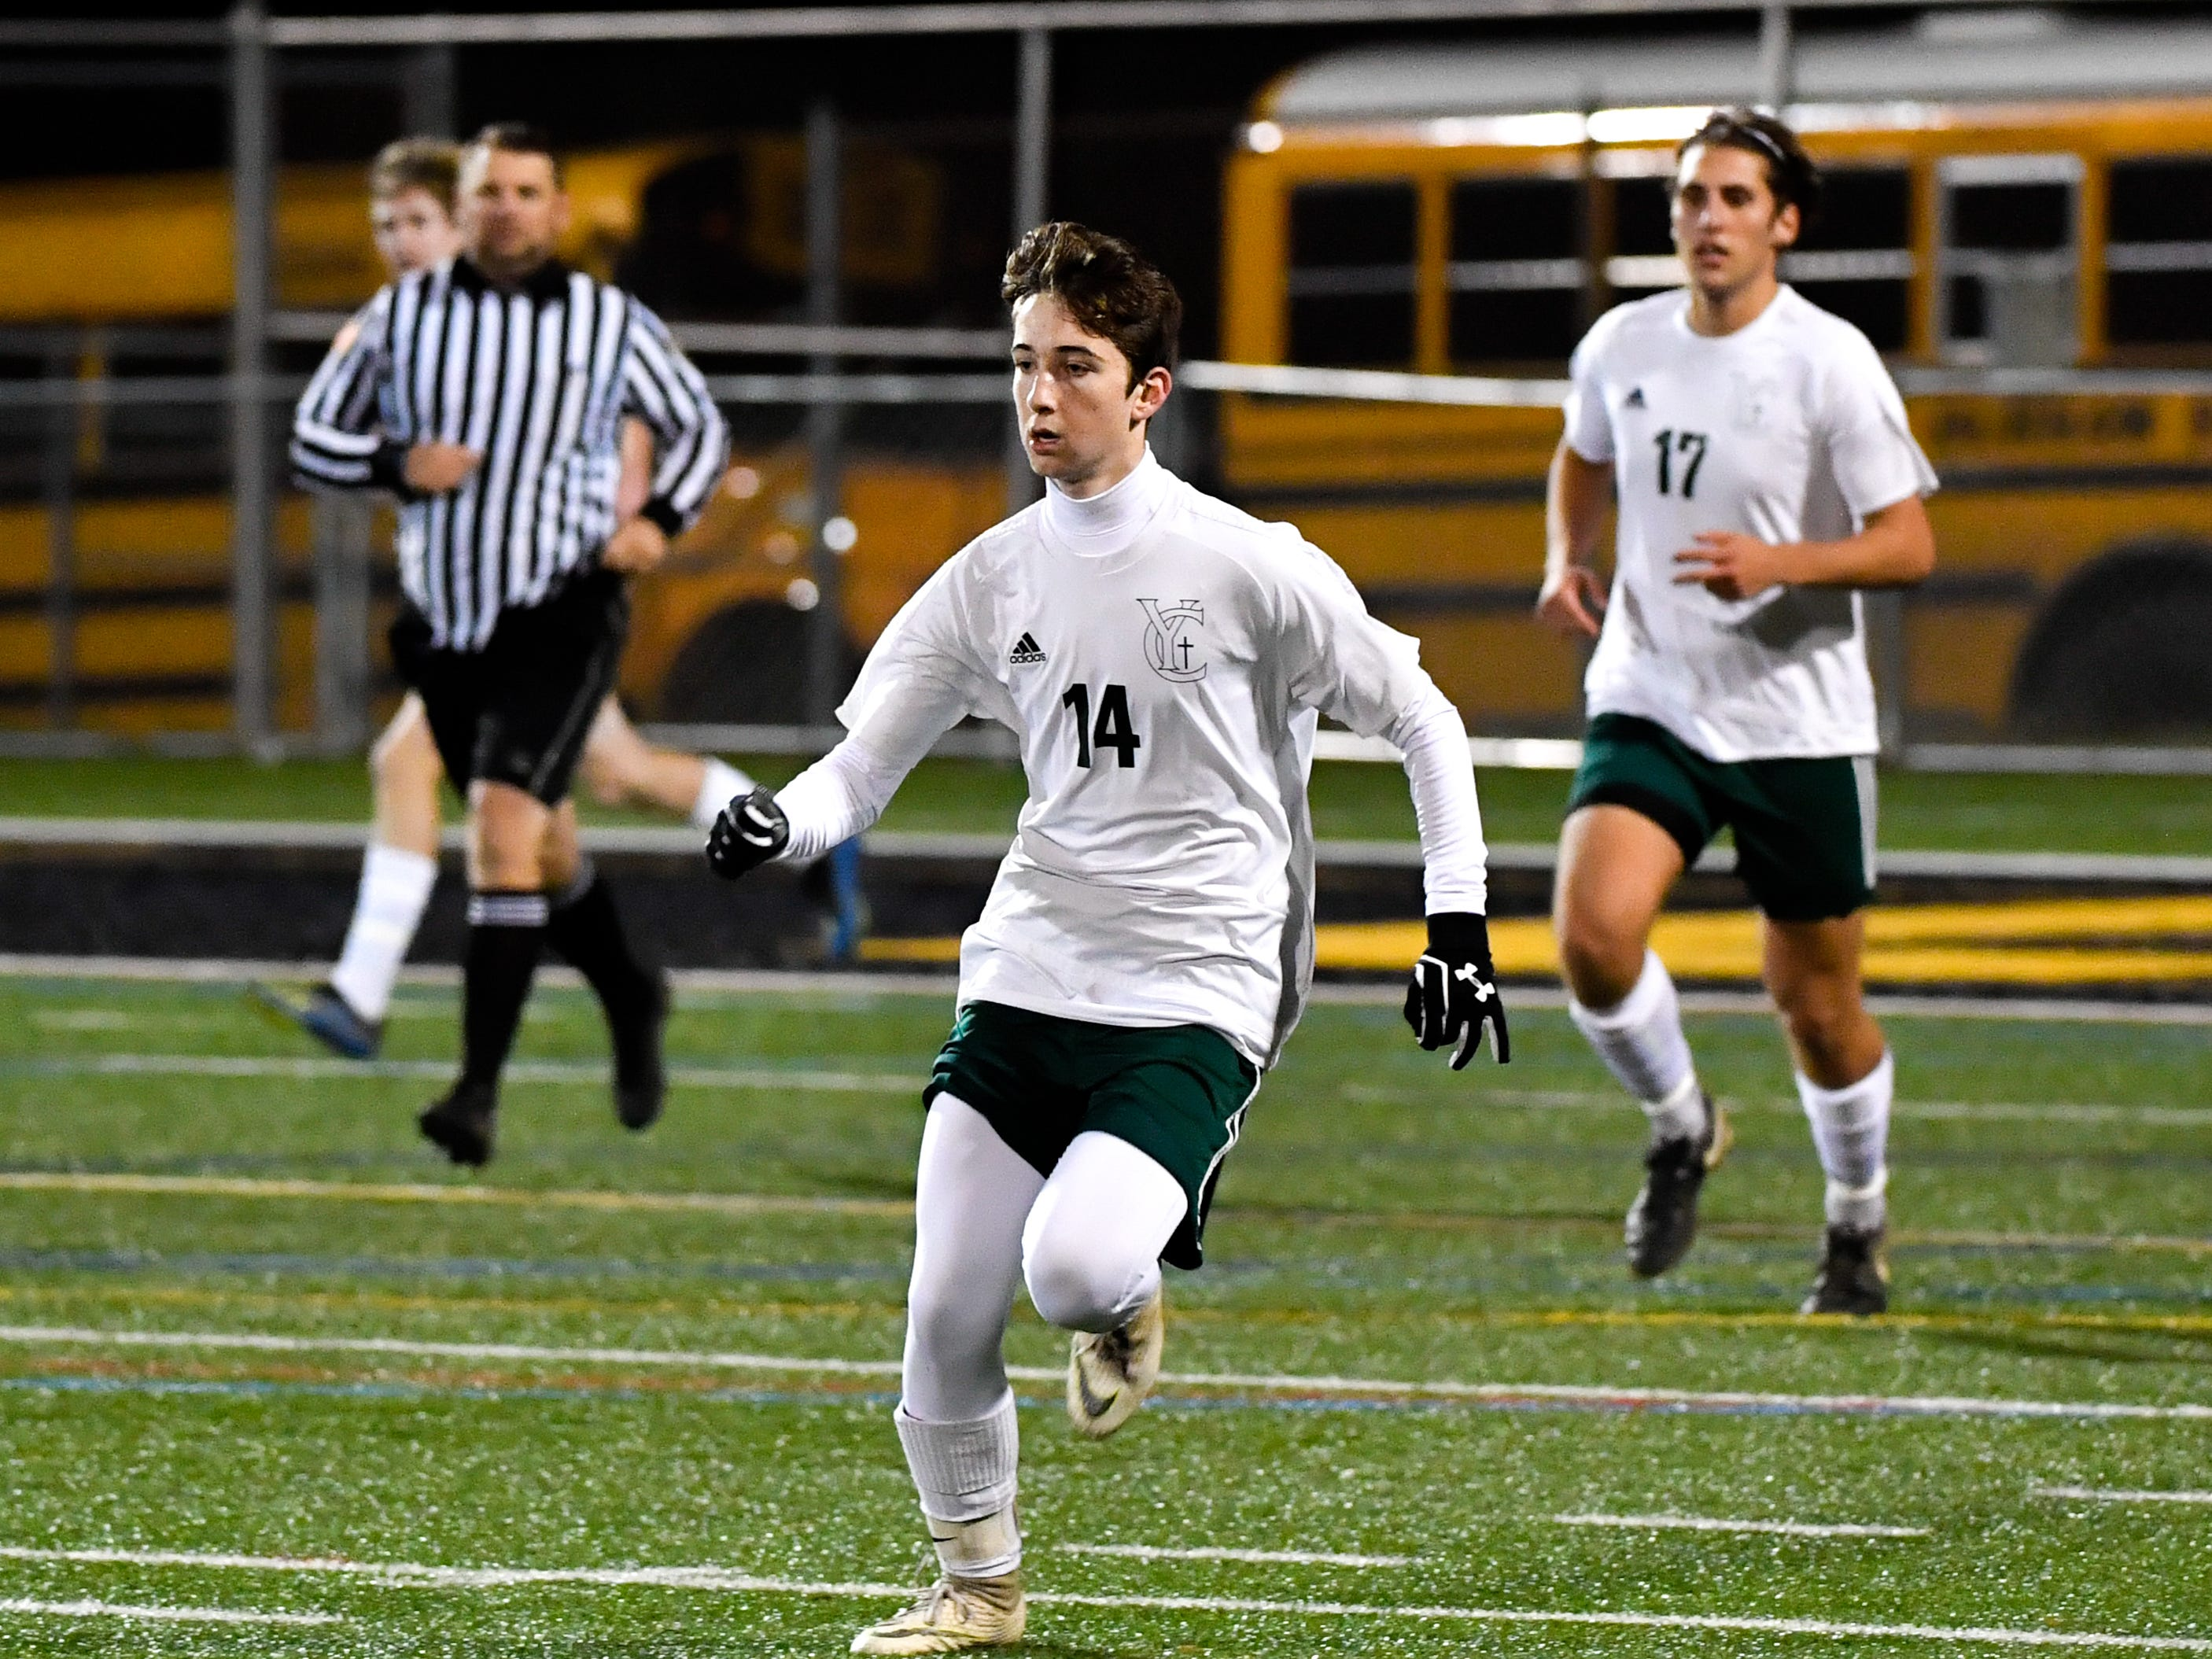 York Catholic's Dylan Staub (14) runs down field during the boys soccer game between South Western and York Catholic, October 16, 2018. The Mustangs beat the Irish 2-1.